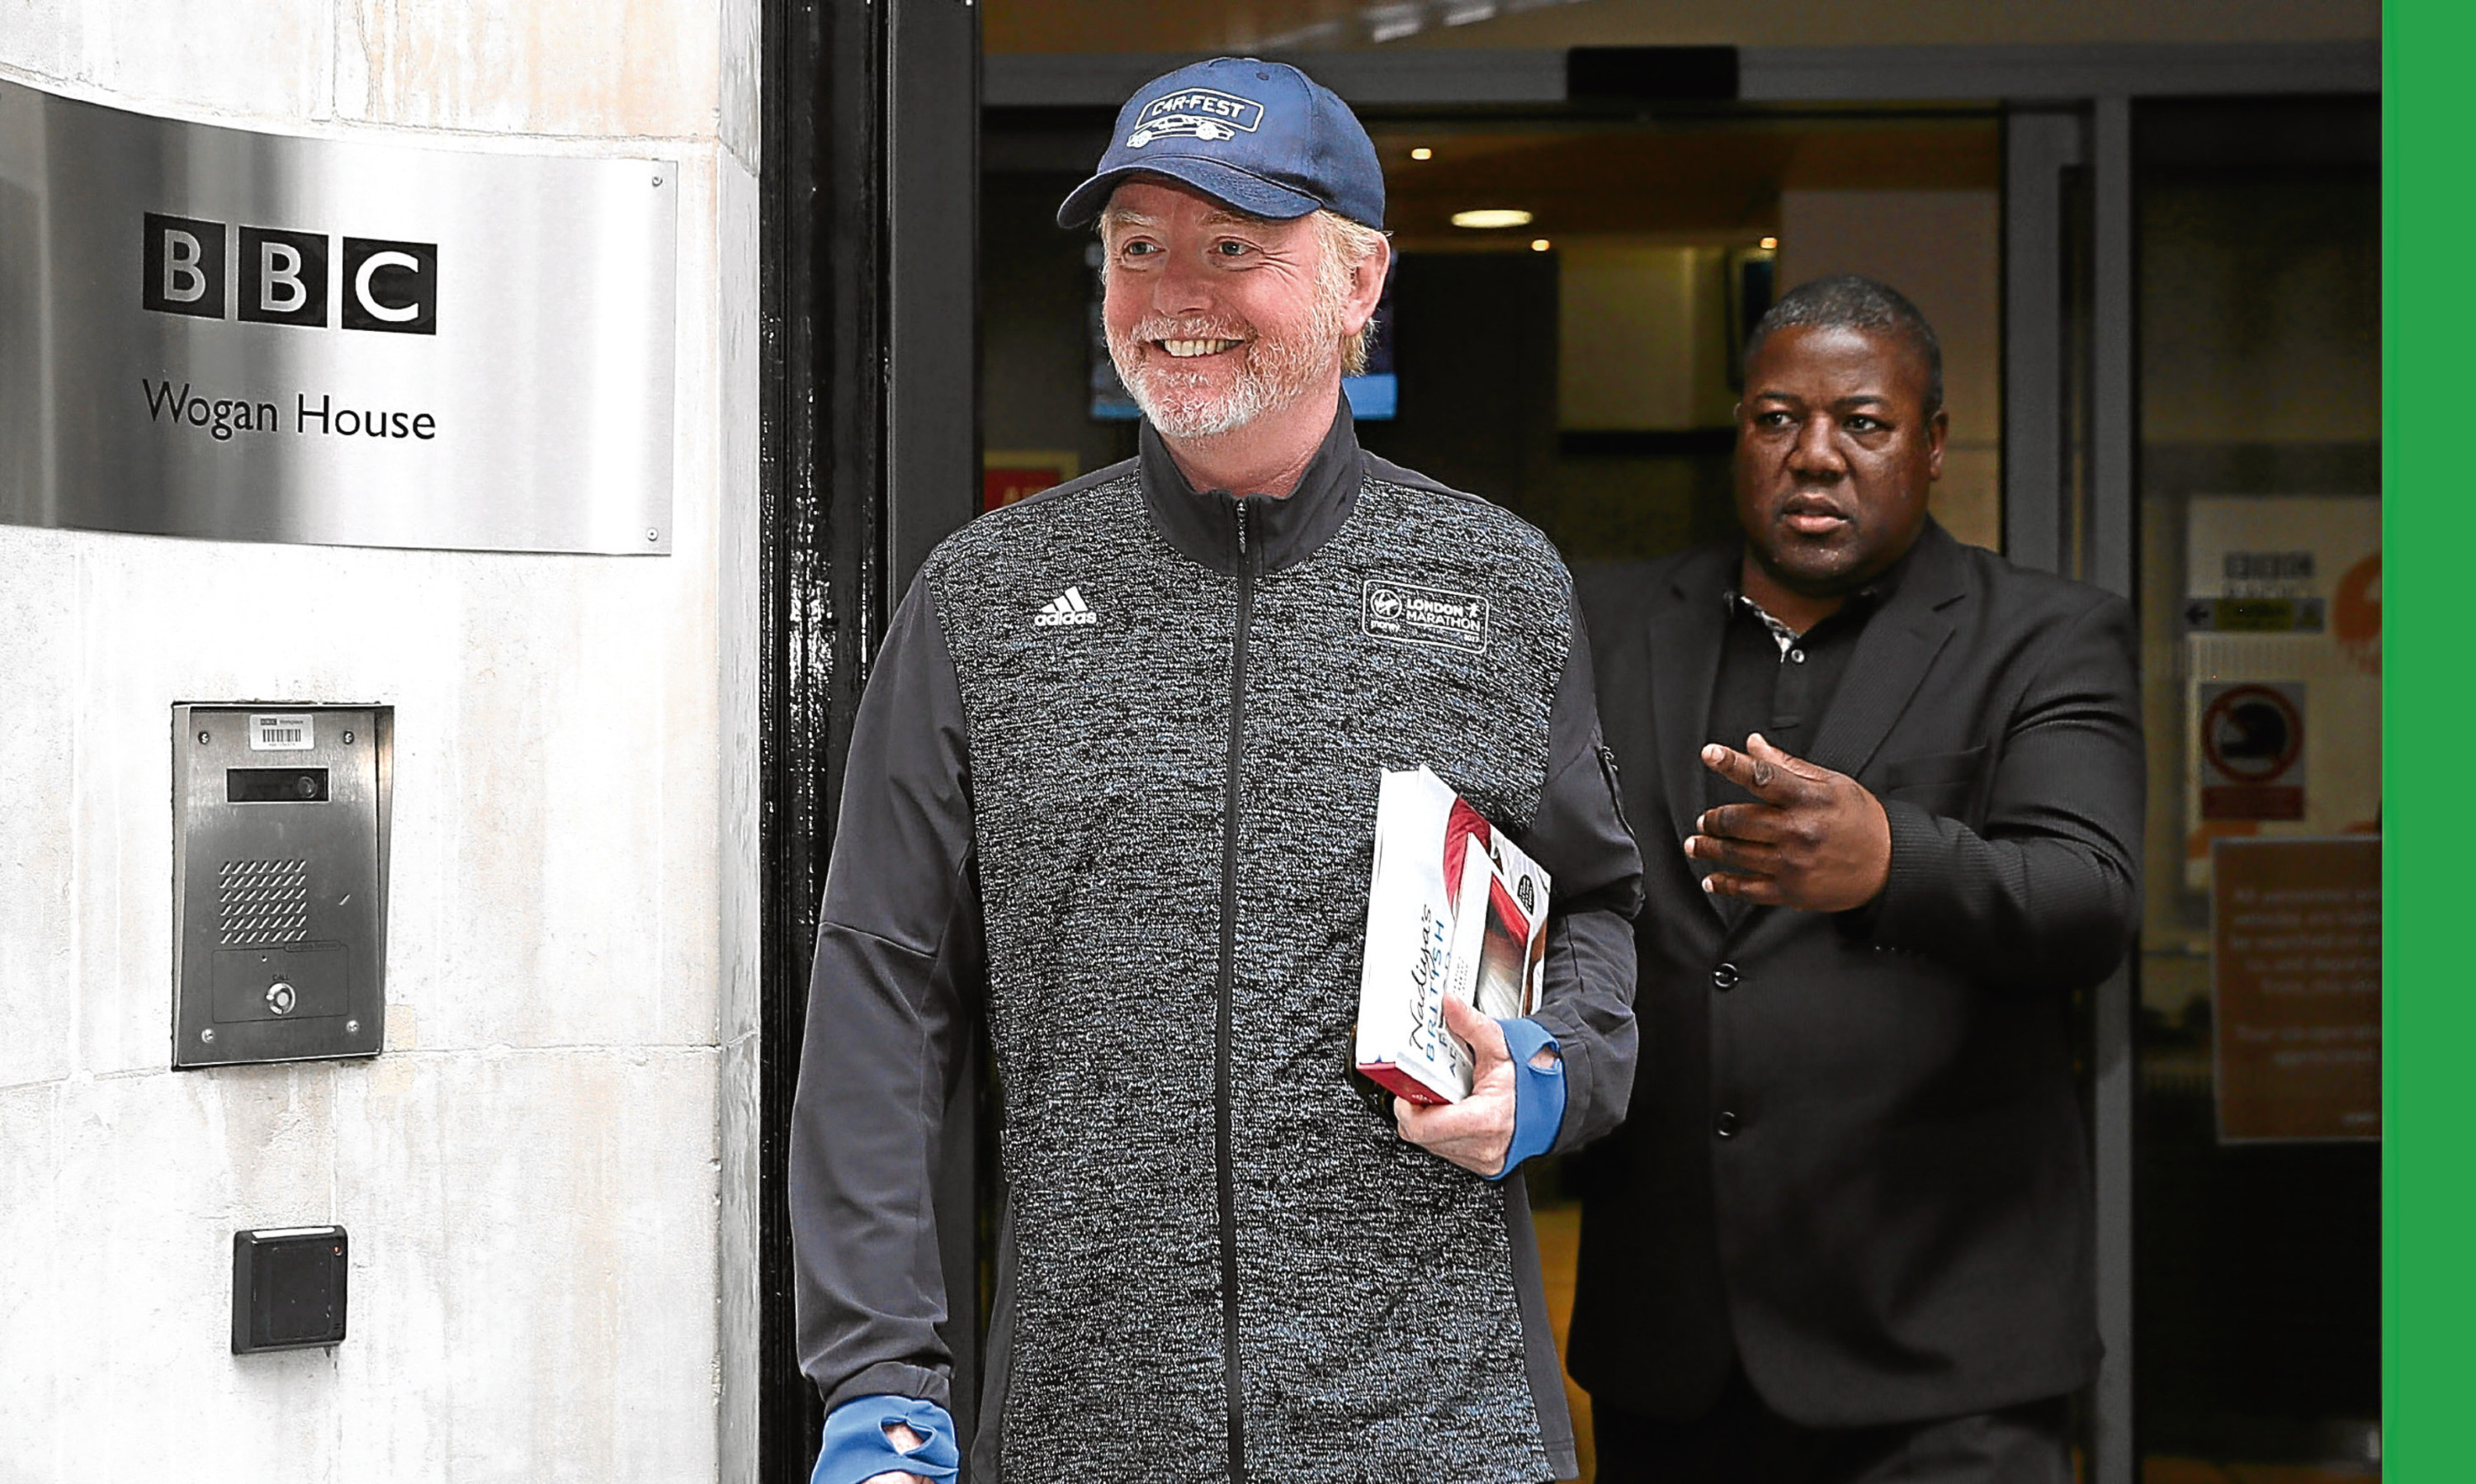 Chris Evans leaves the BBC's Wogan House after his pay was revealed.